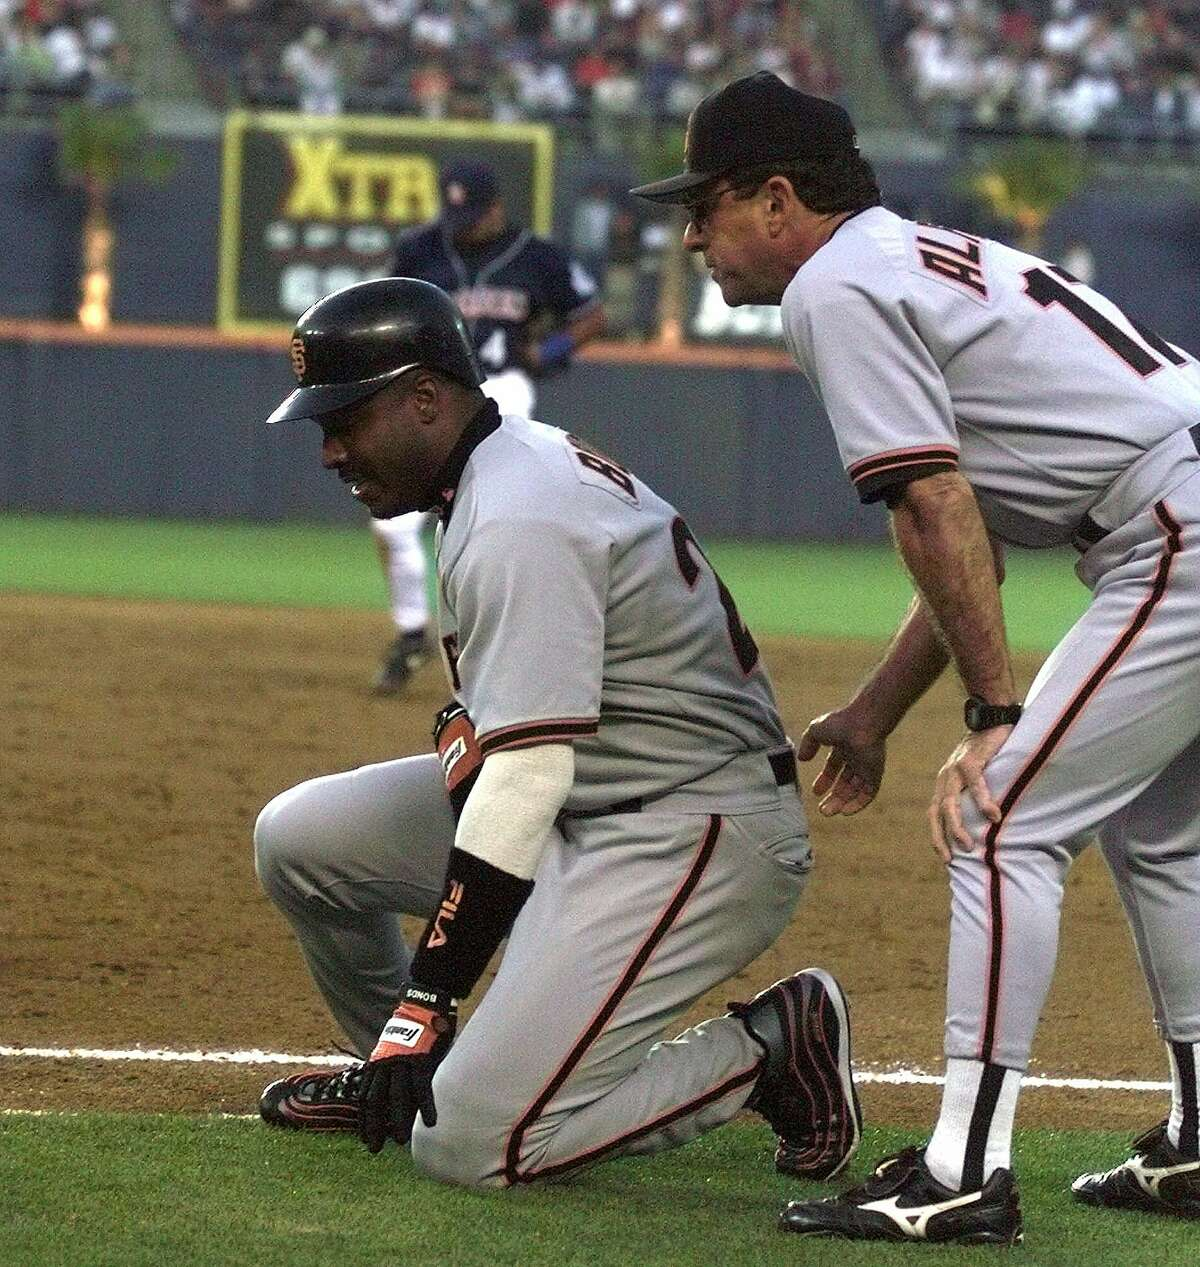 San Francisco Giants' Barry Bonds is assisted by first-base coach Carlos Alfonso after pulling up while running out a ground ball in a 1999 game against the Padres.